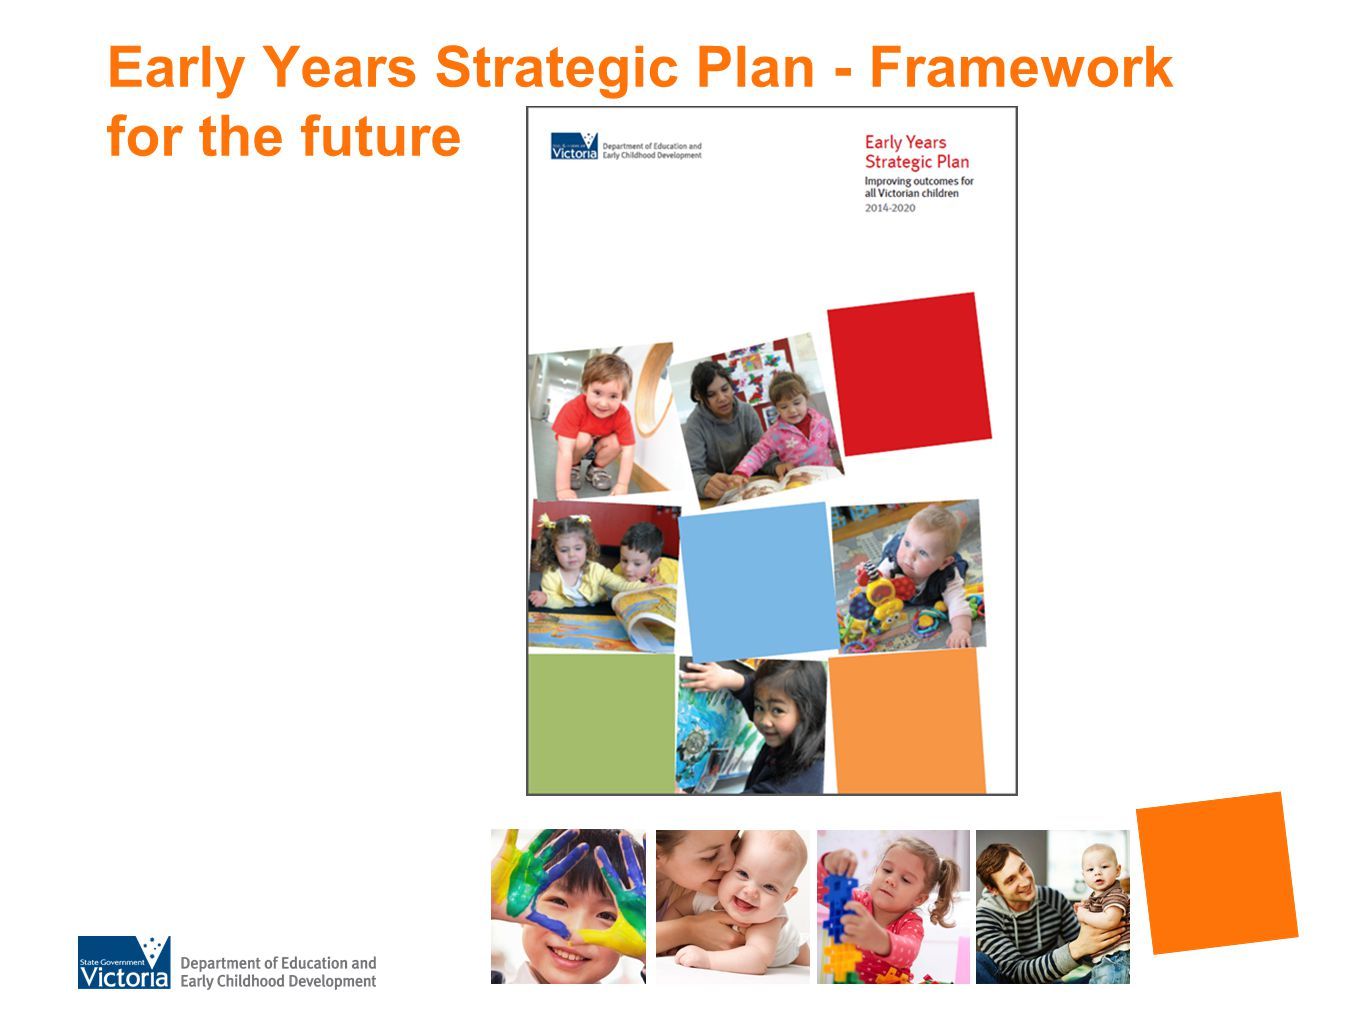 Early Years Strategic Plan - Framework for the future